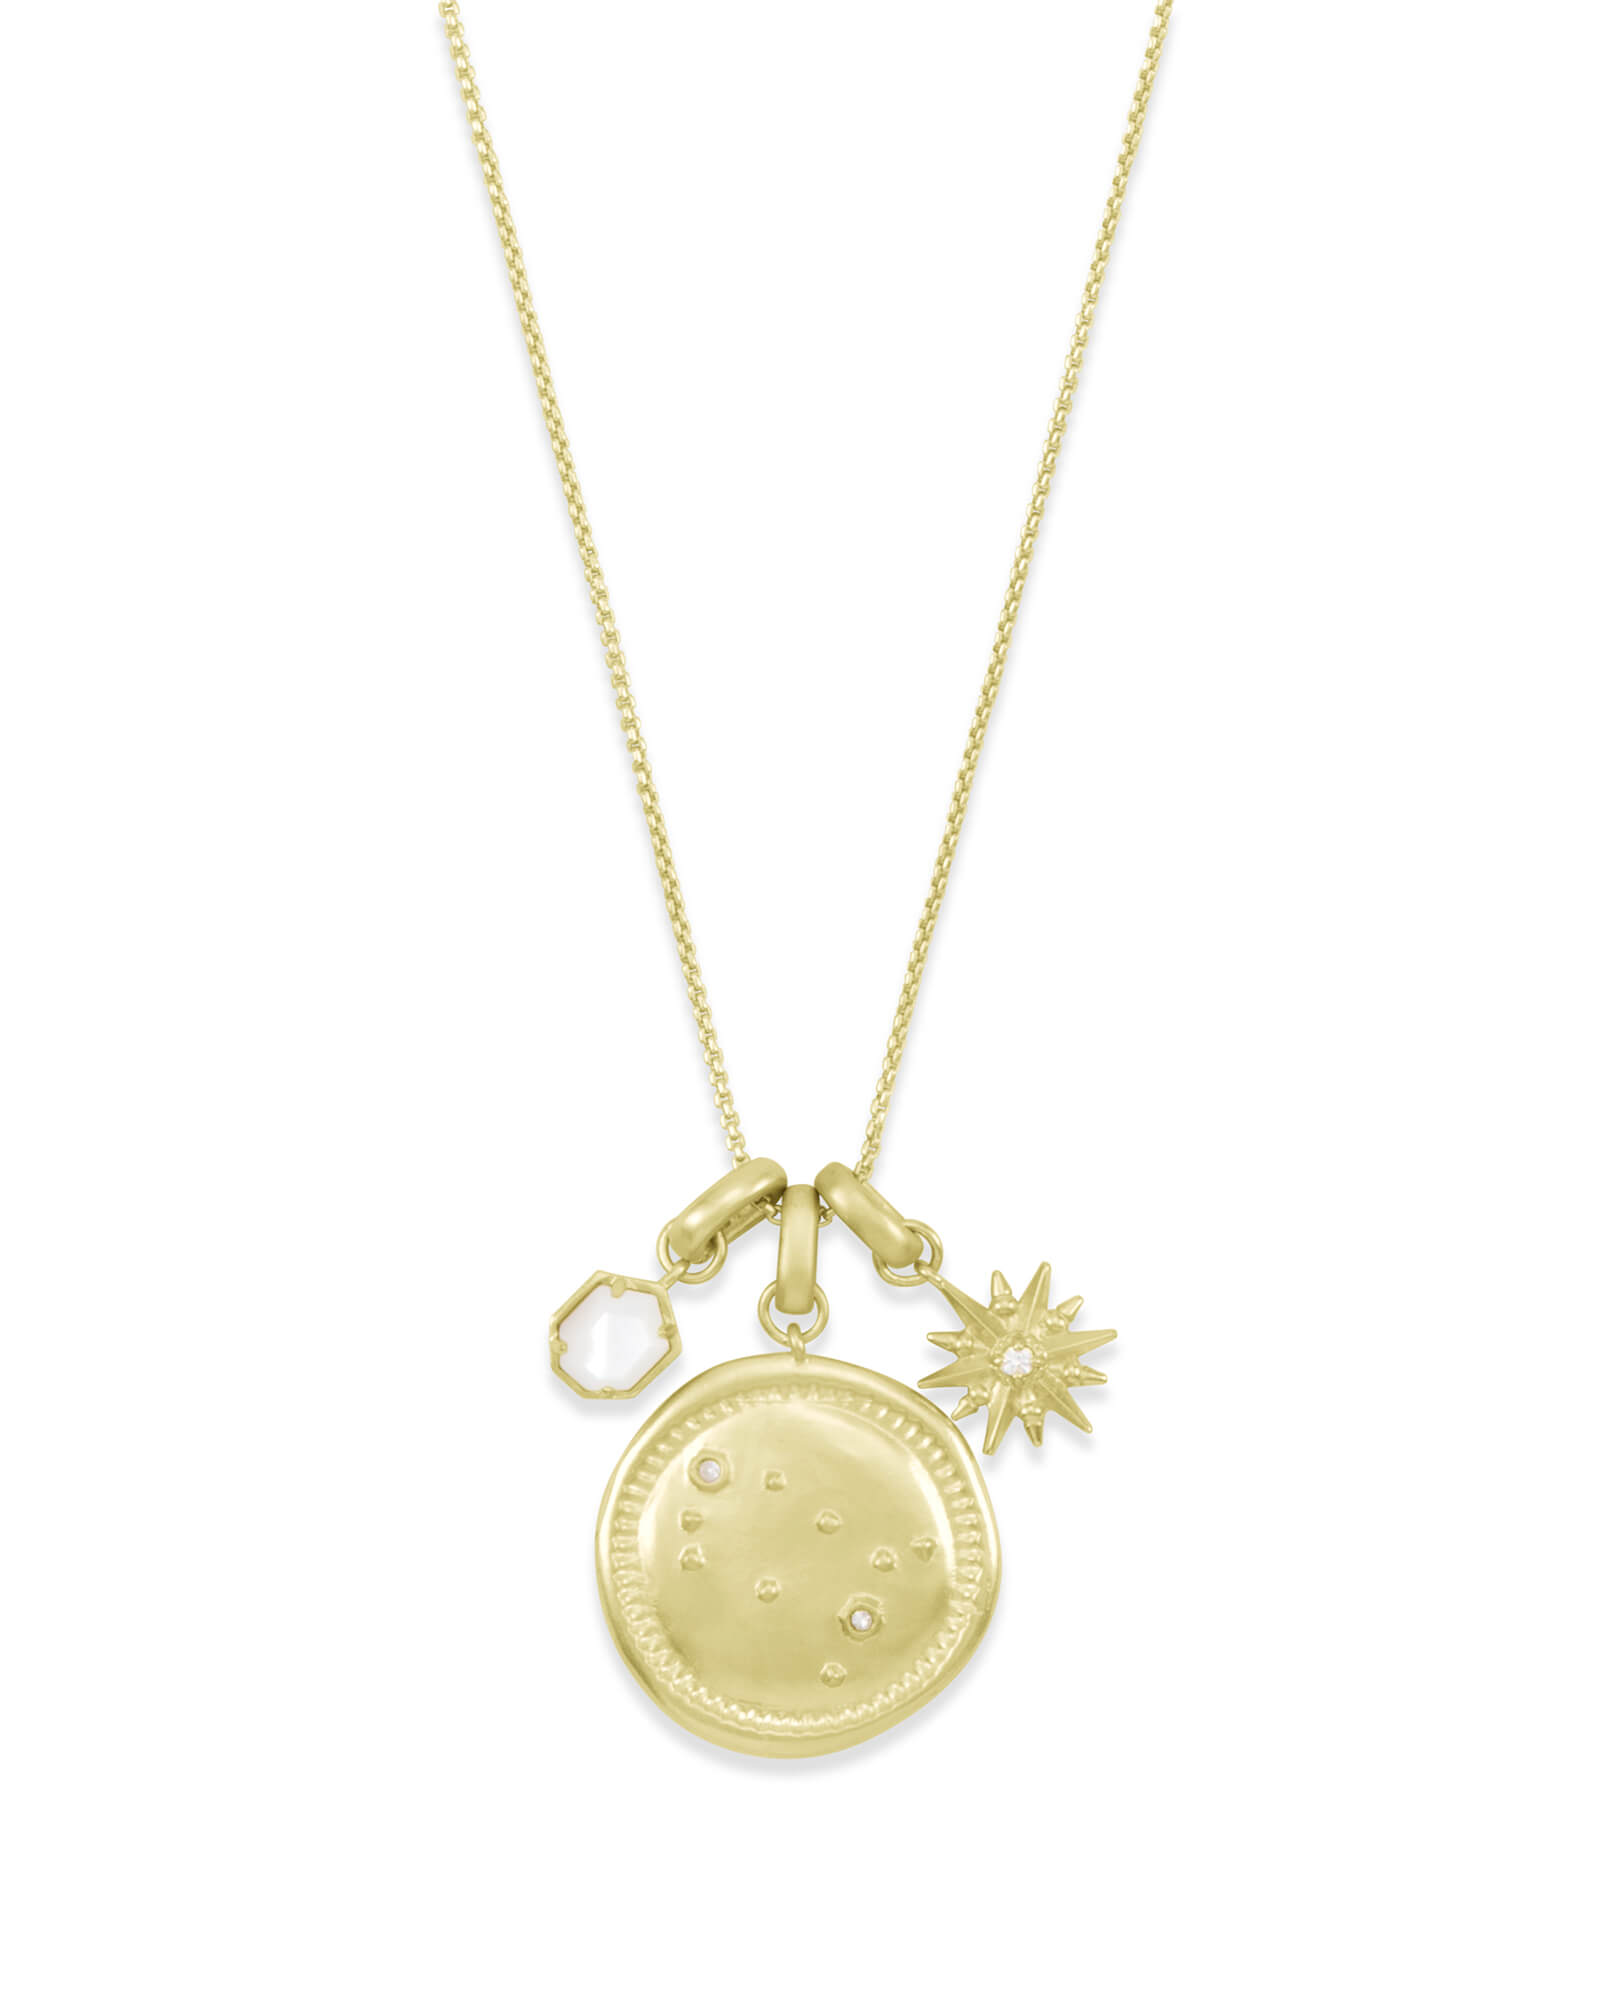 June Gemini Charm Necklace Set in Gold